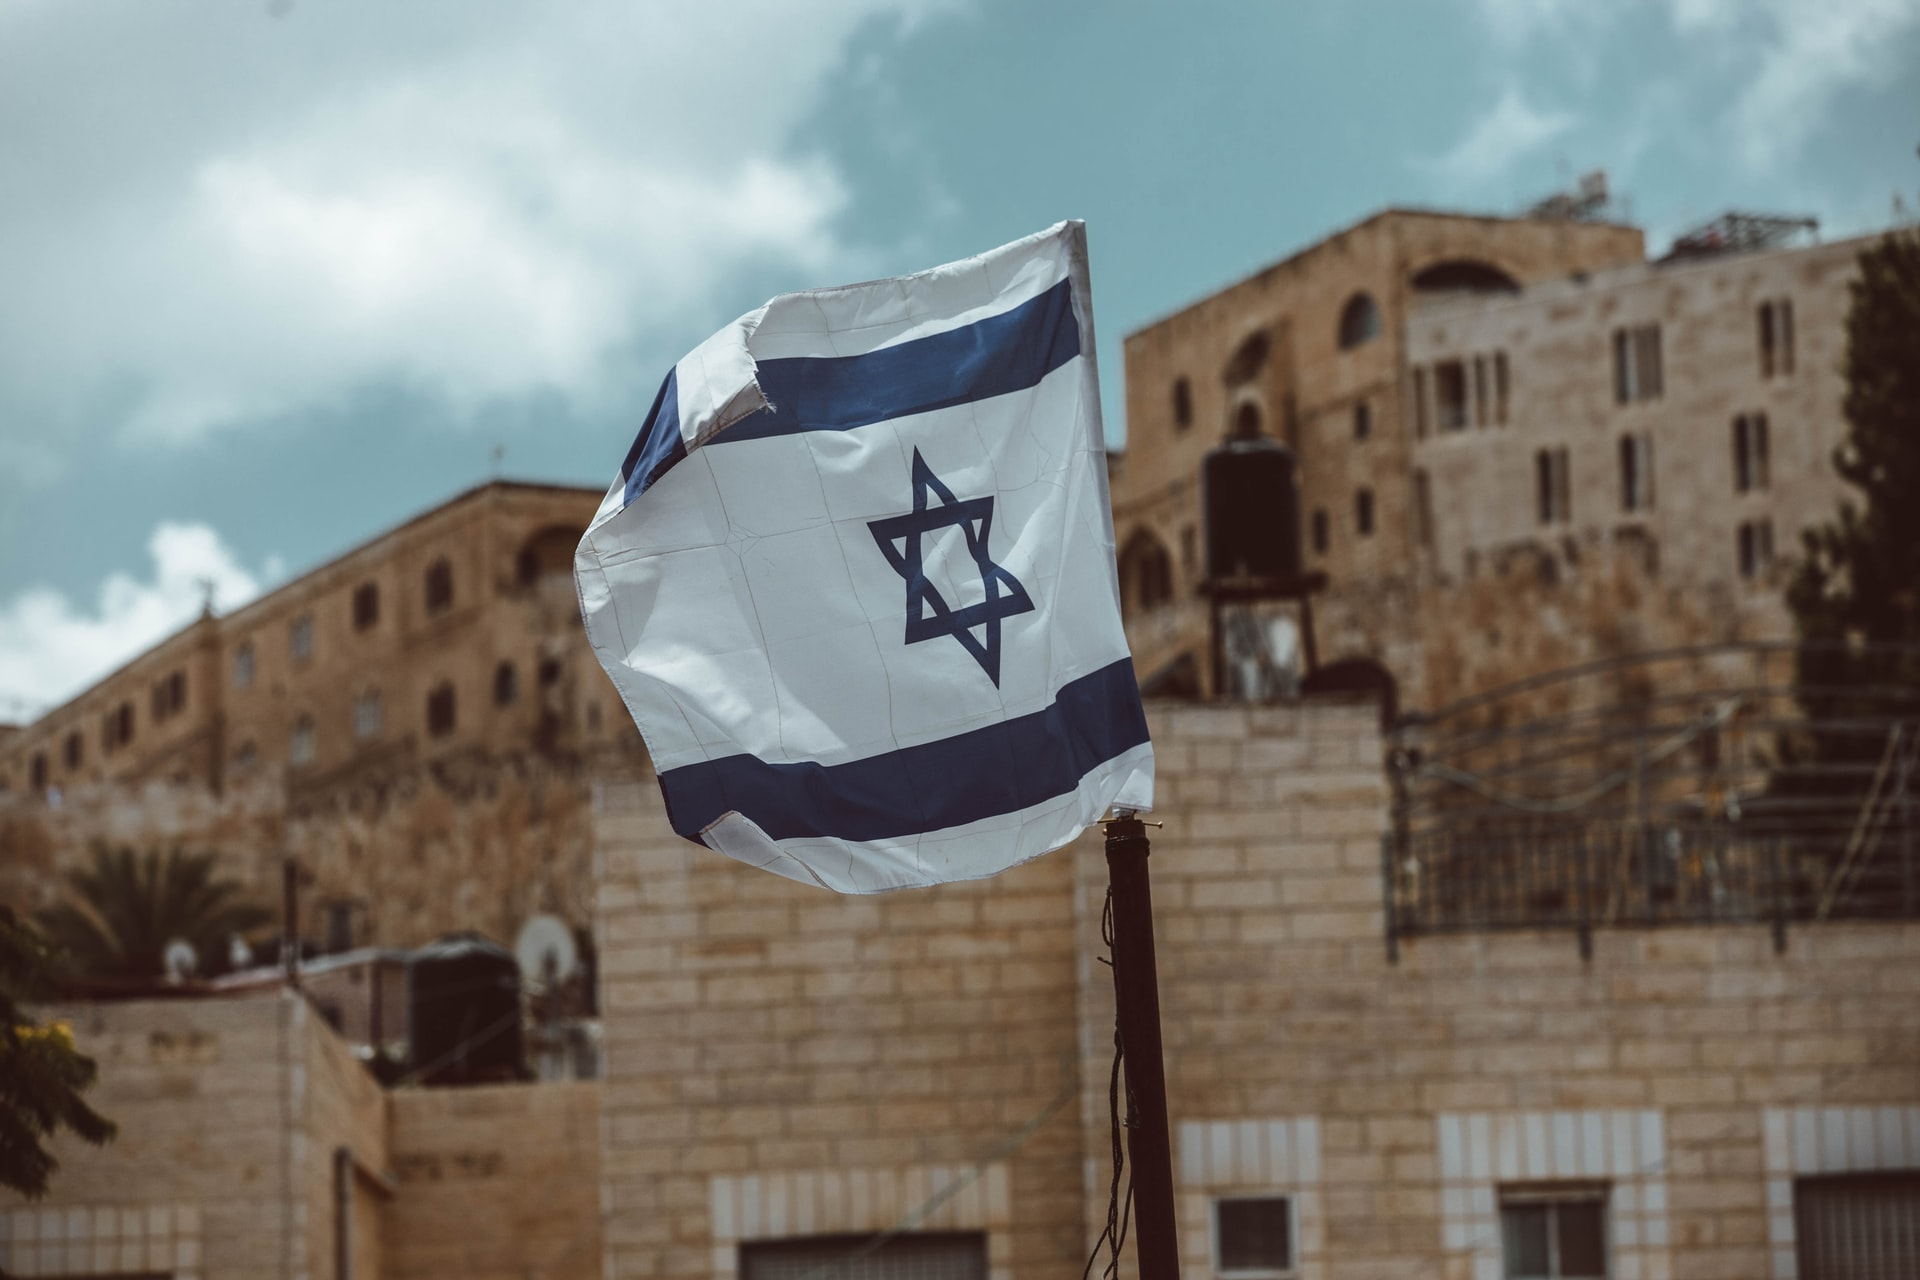 Tazria-Metzora and Israel's Days of Mourning and Joy